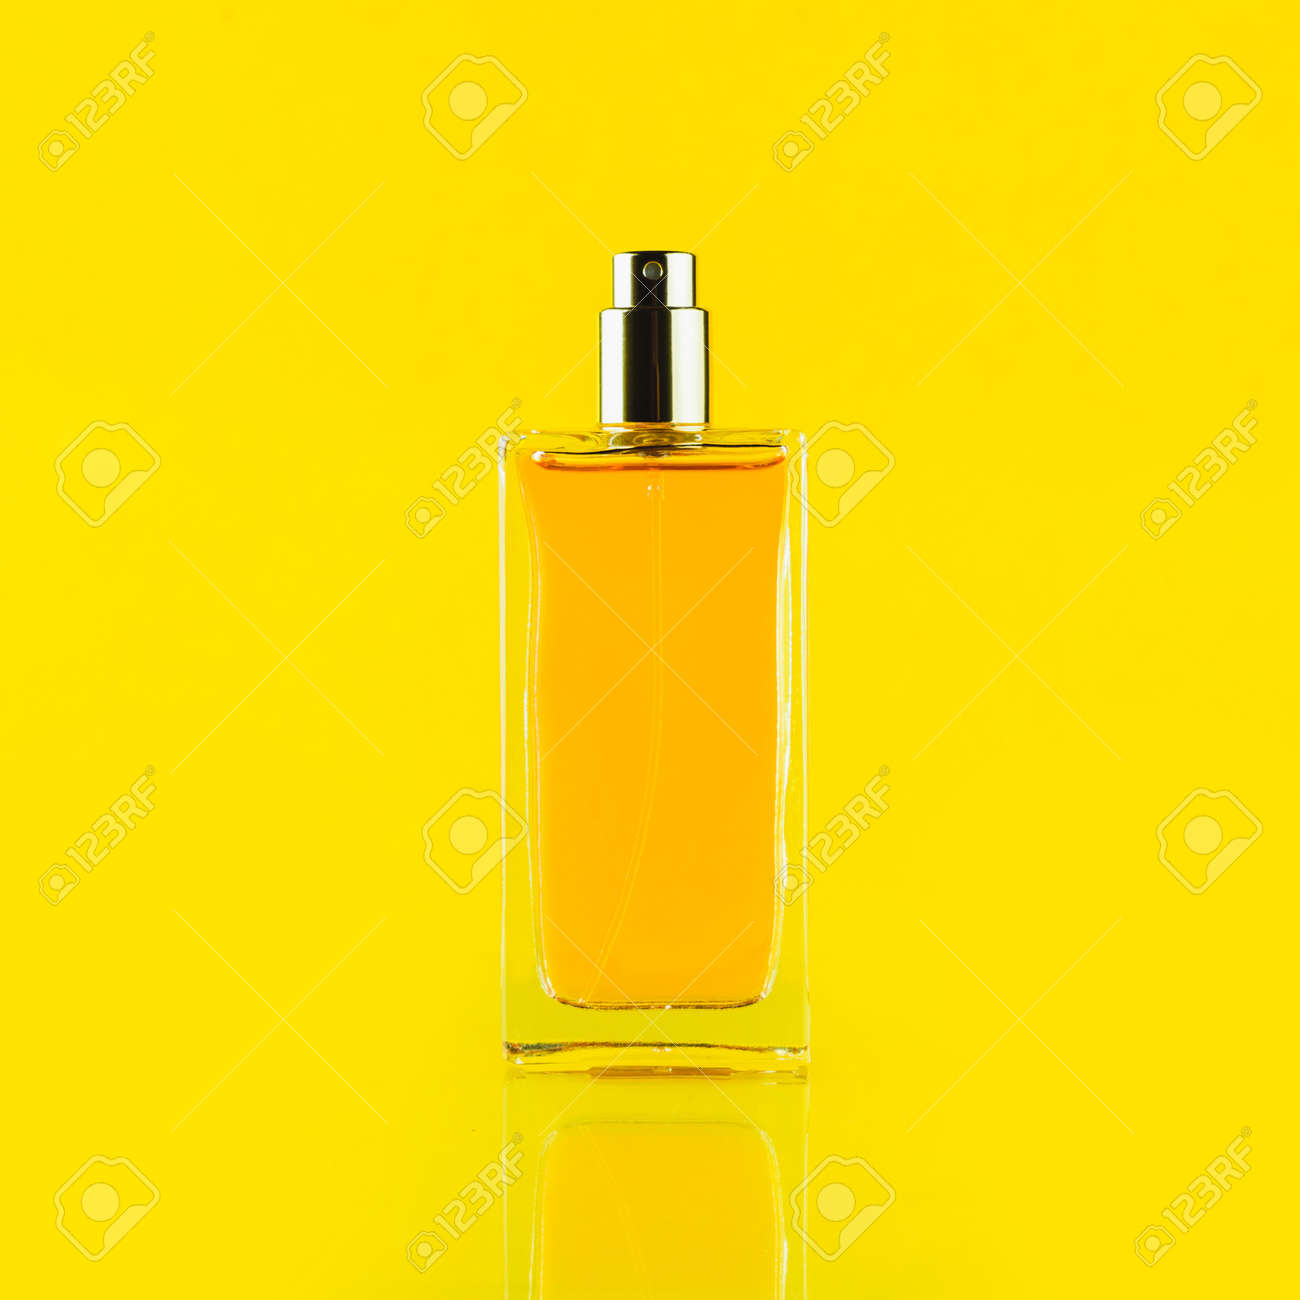 Perfume bottle on a light yellow background - 152811745